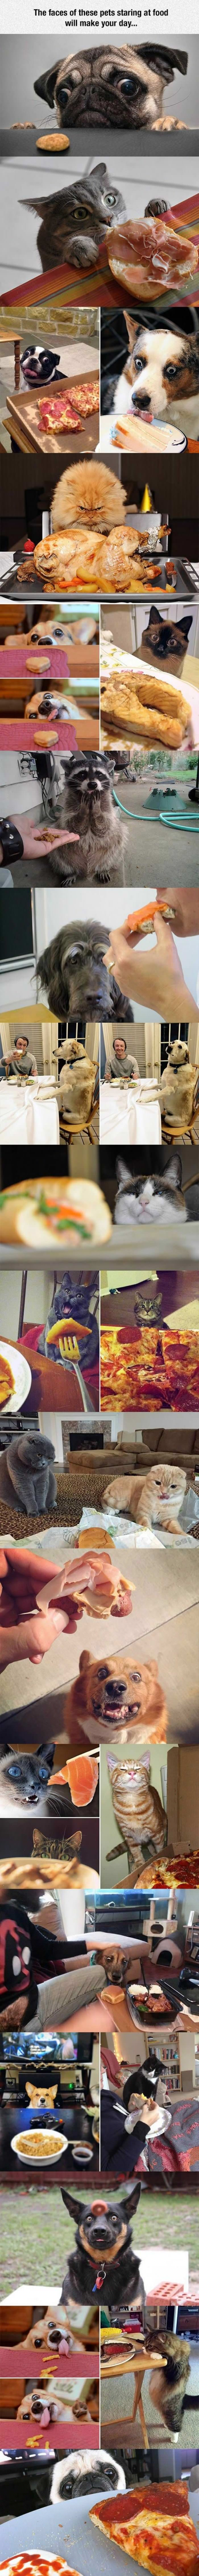 faces of pets looking at food funny picture